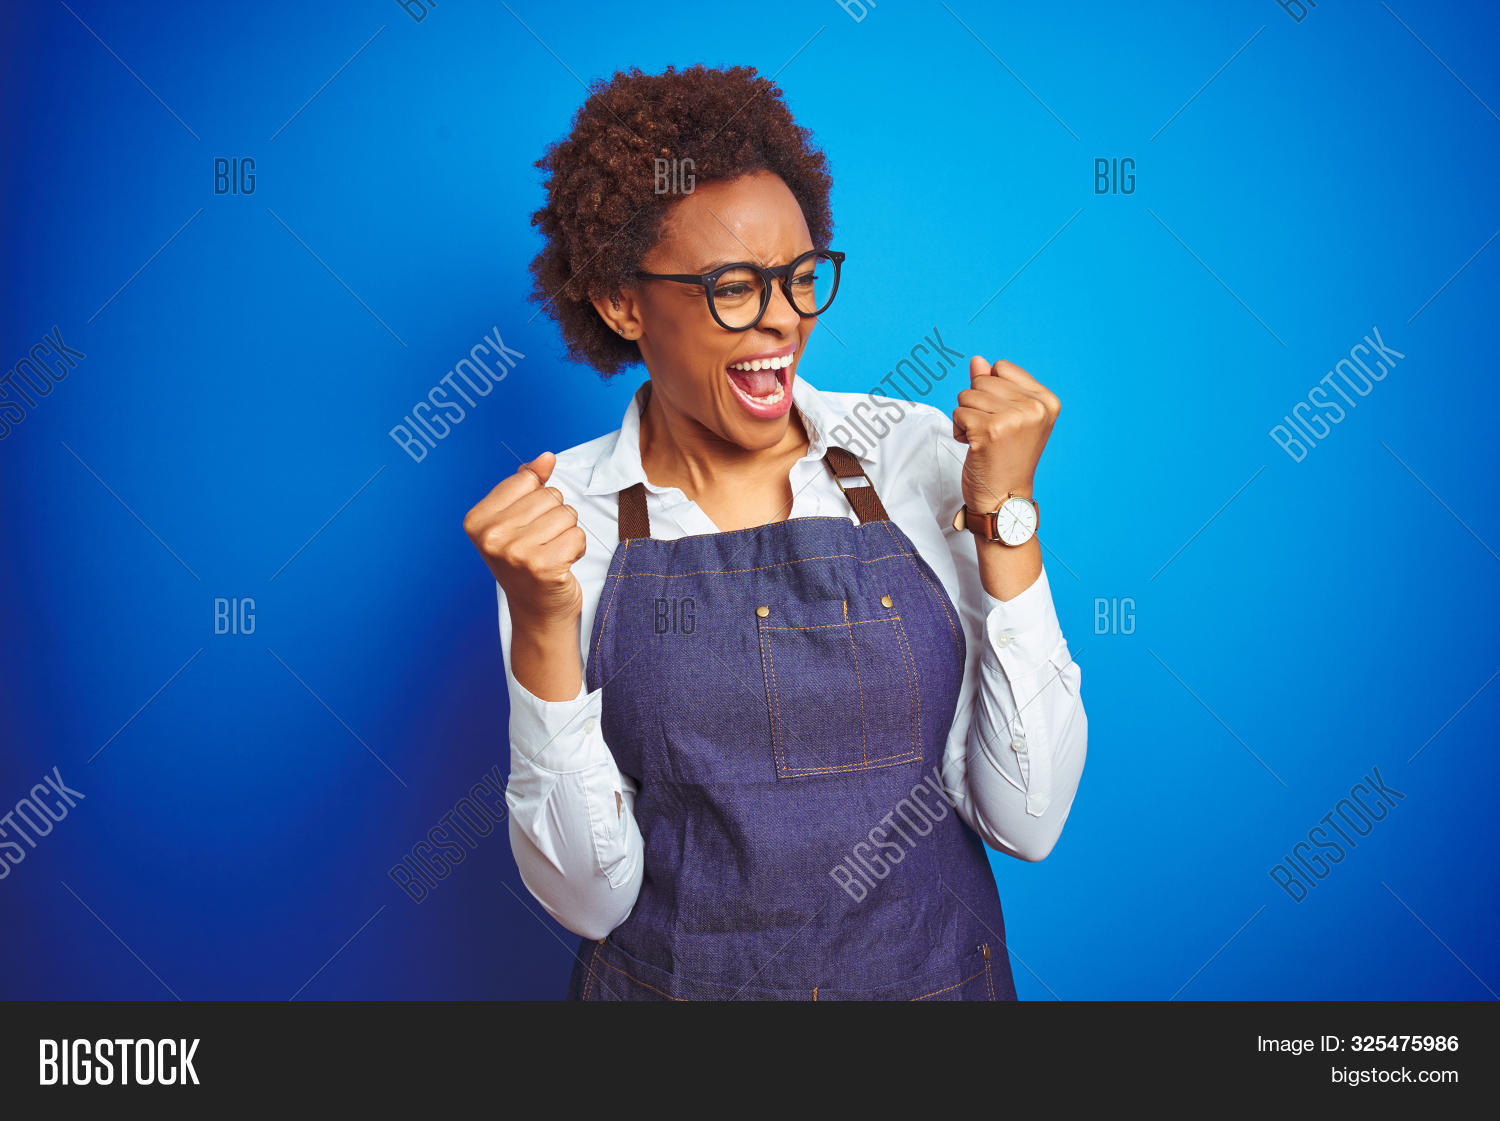 Young african american woman shop owner wearing business apron over blue background very happy and e